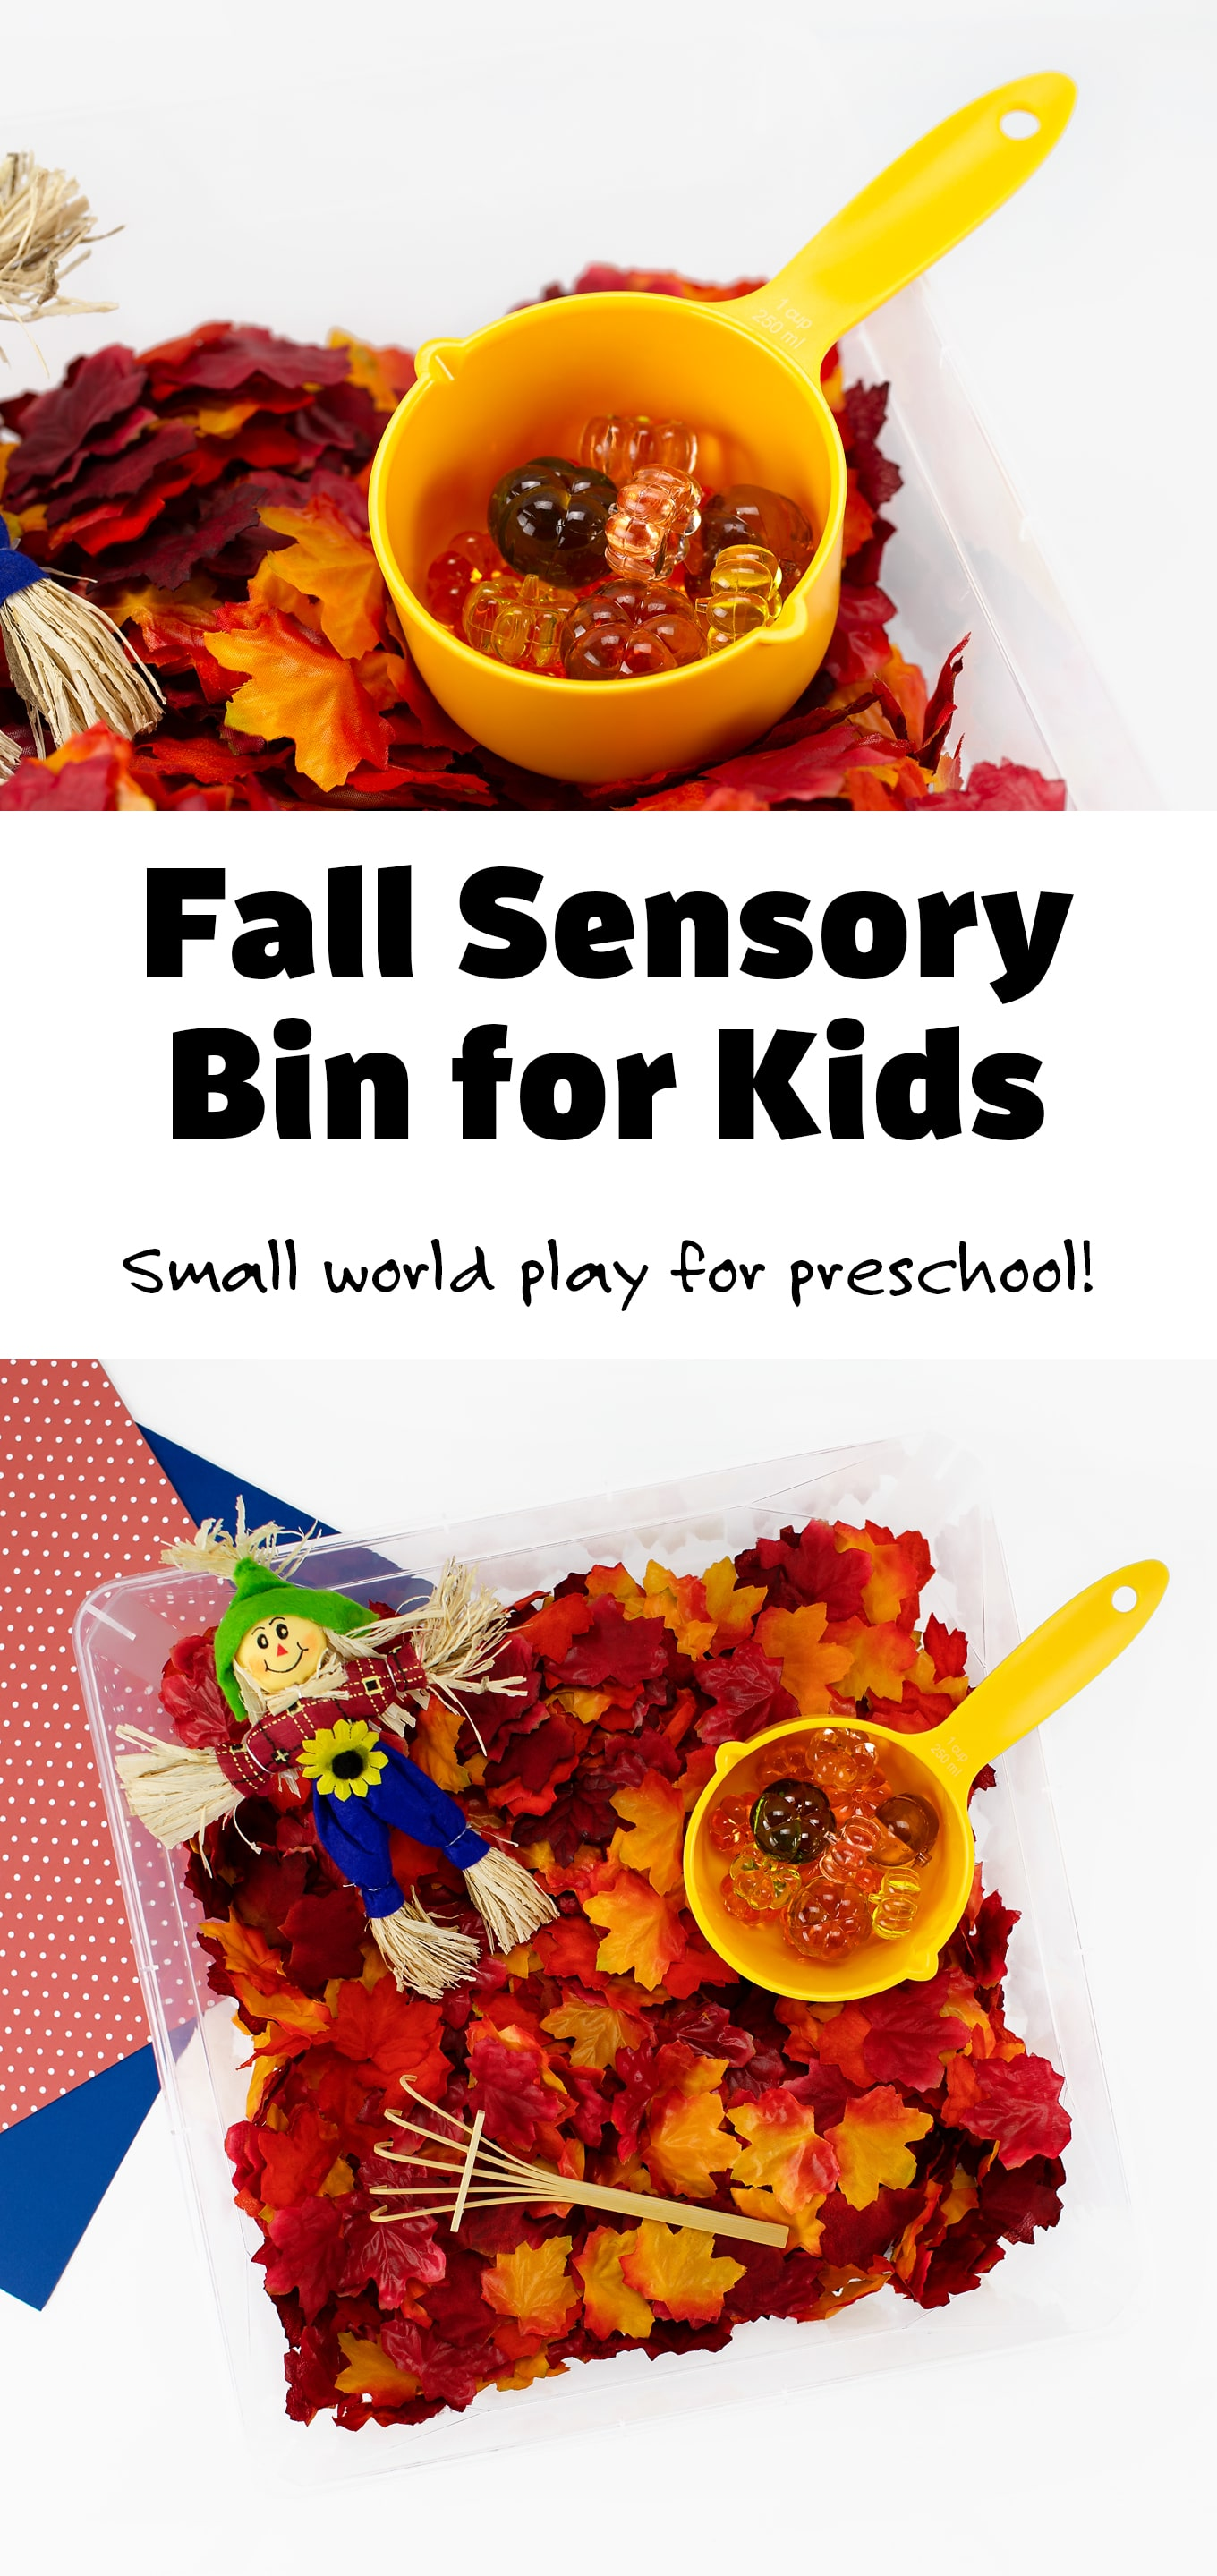 Packed with crunchy fall leaves, shiny gems, and a friendly scarecrow, this fall sensory bin is perfect for autumn learning and play.#fallsensorybin #preschool #craftsforkids via @firefliesandmudpies